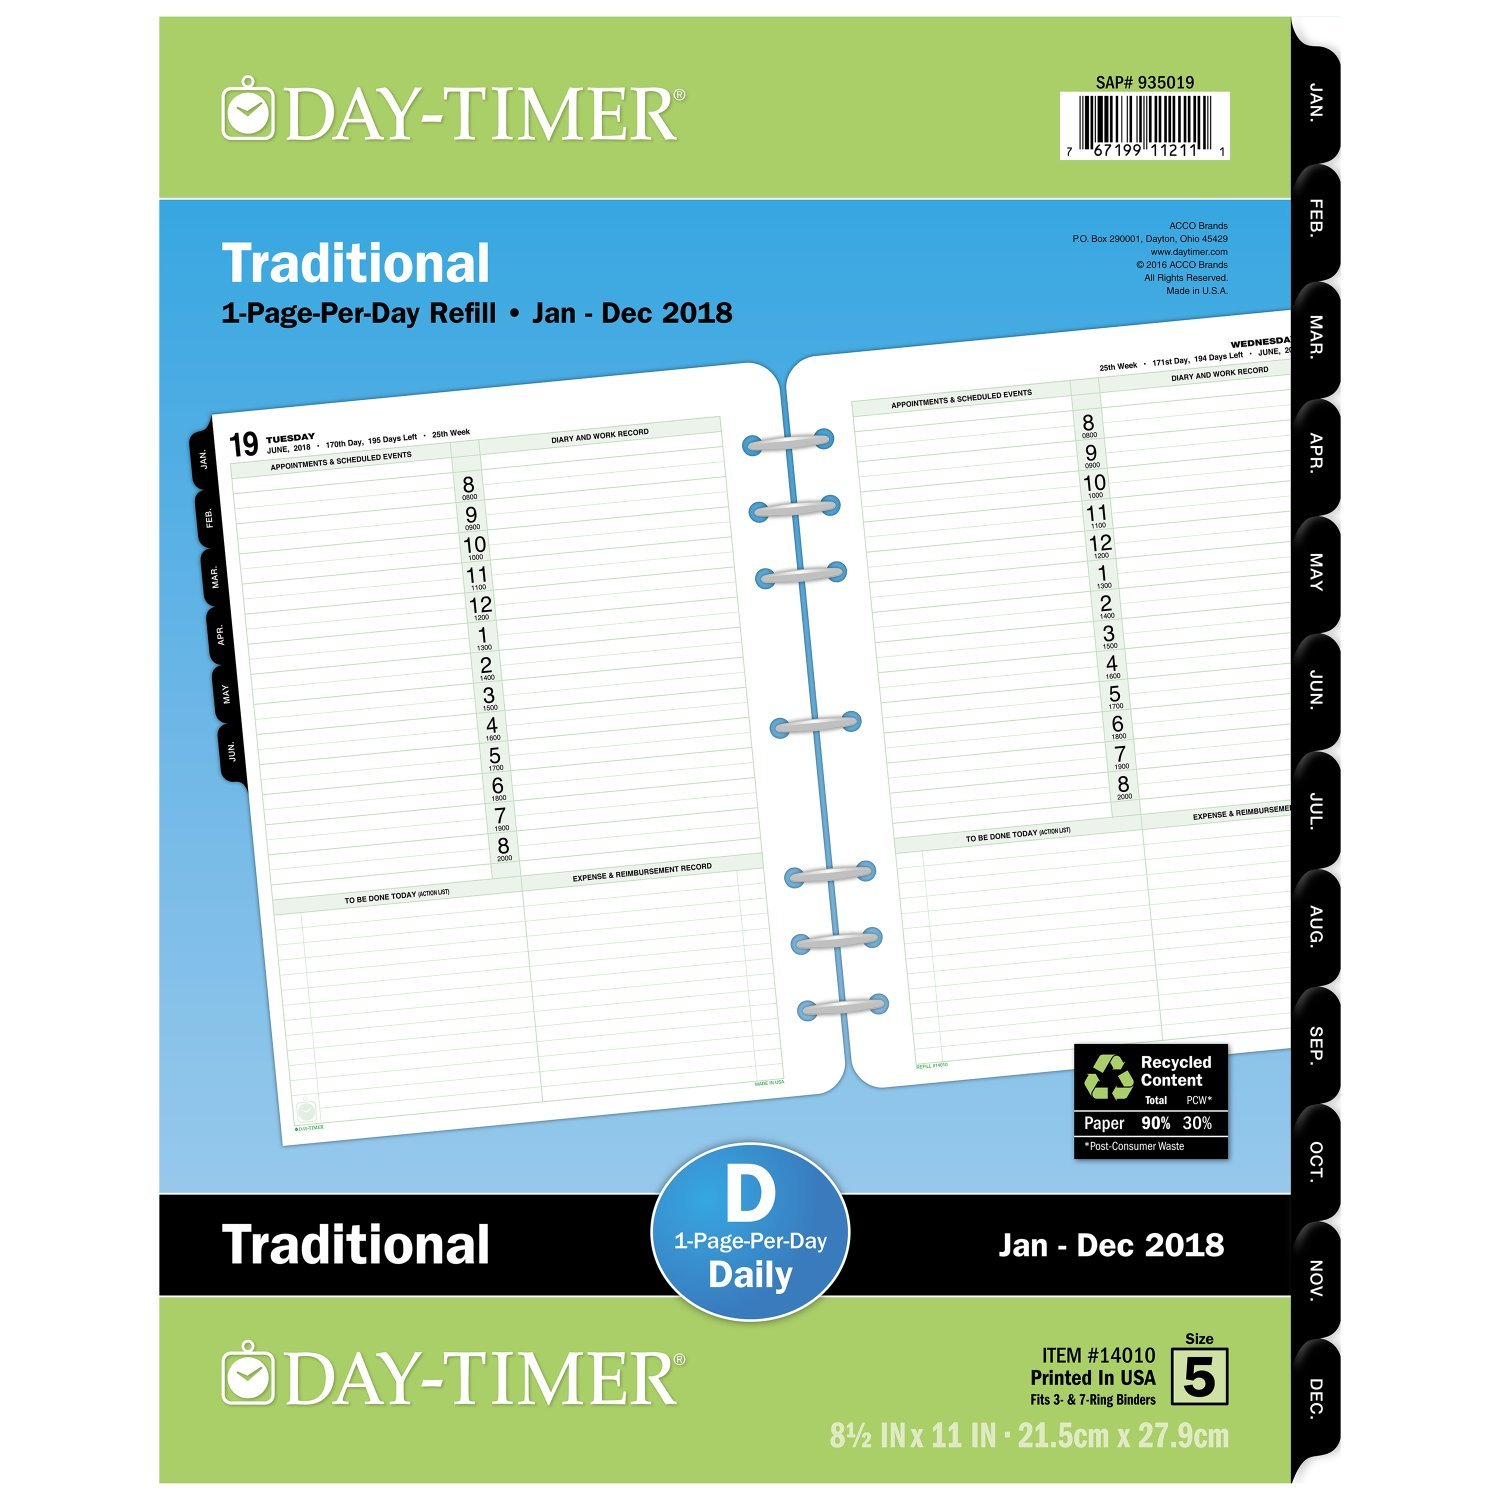 Day-Timer Refill 2018, One Page Per Day, January 2018 - December 2018, 8-1/2 x 11, Loose Leaf, Folio Size, Classic (14010-1801) 8-1/2 x 11 ACCO Brands